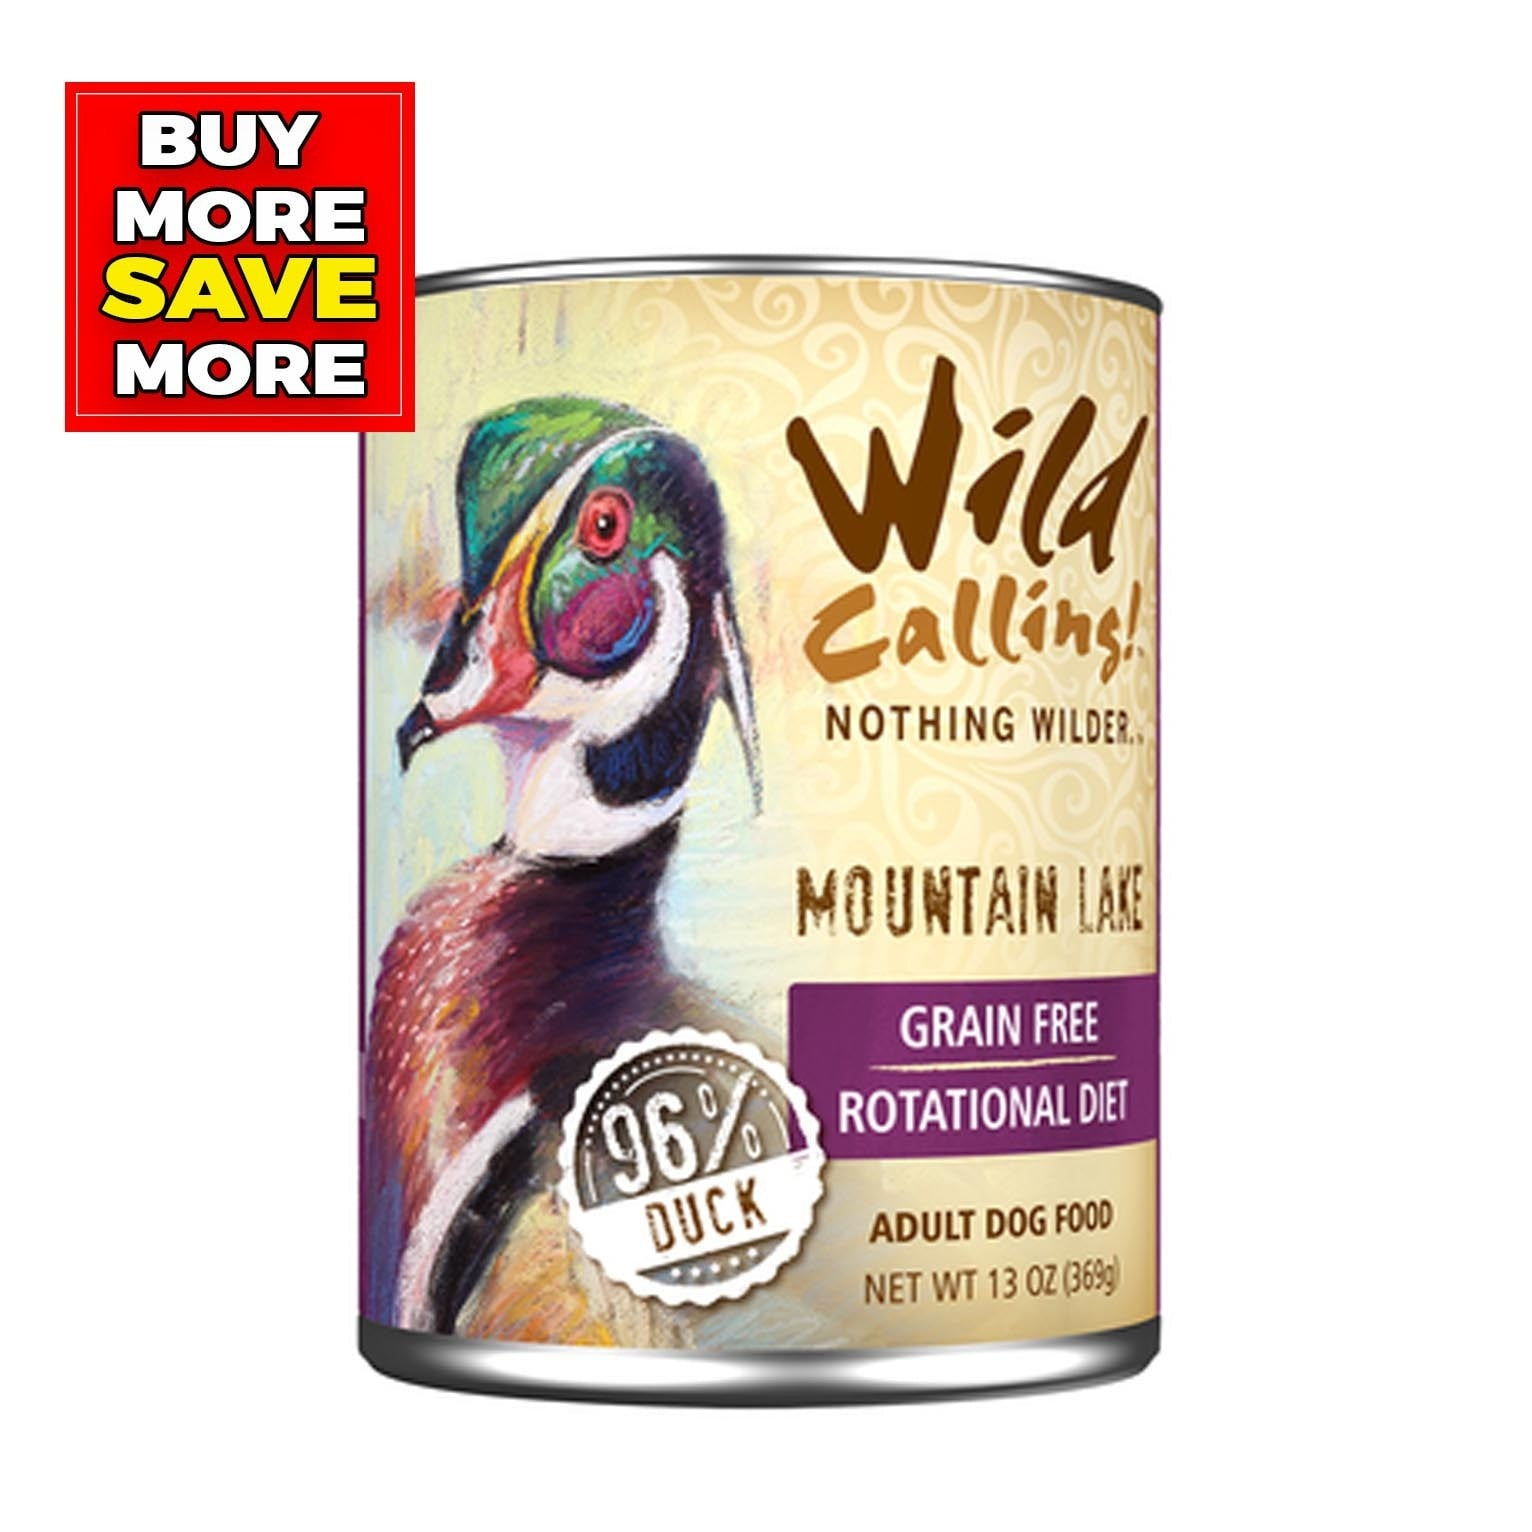 Wild Calling Canned Dog Food